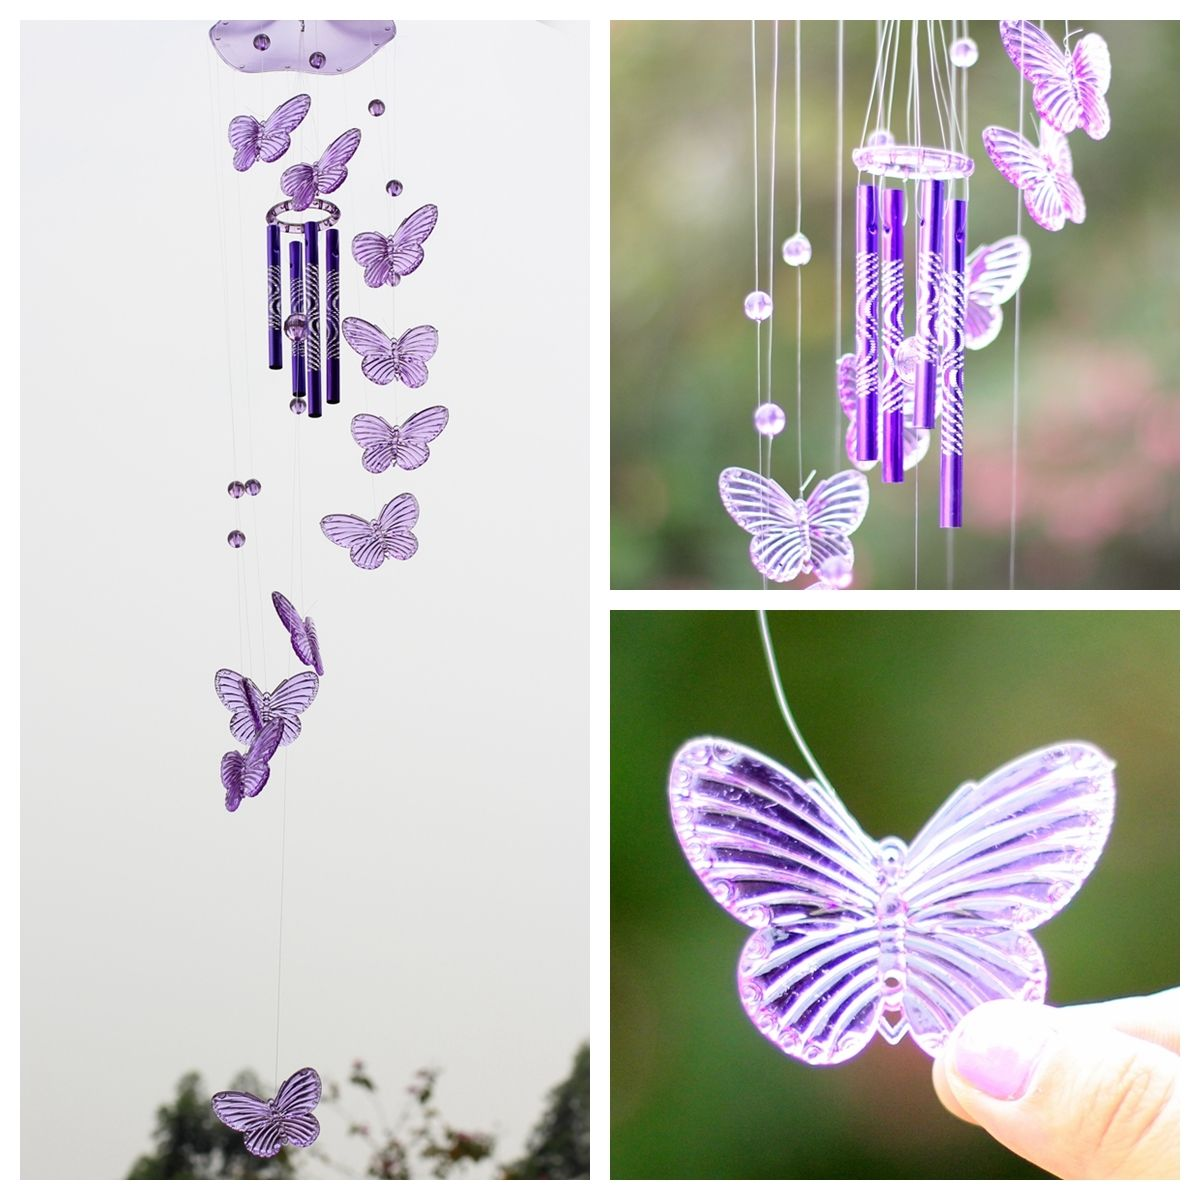 How To Make A Wind Chime How To Make Crystal Wind Chimes Rocketshotz